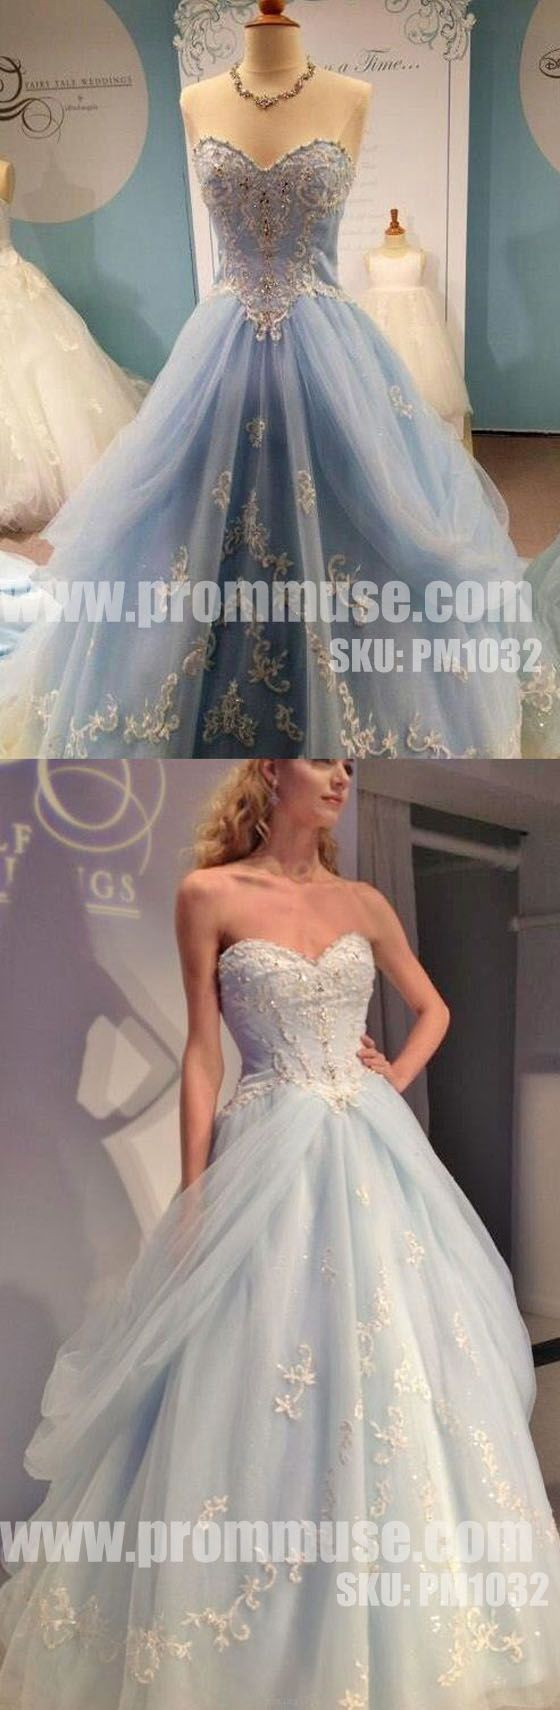 Charming Sweetheart Light Blue Tulle Applique Evening Long Prom Dresses, PM1032